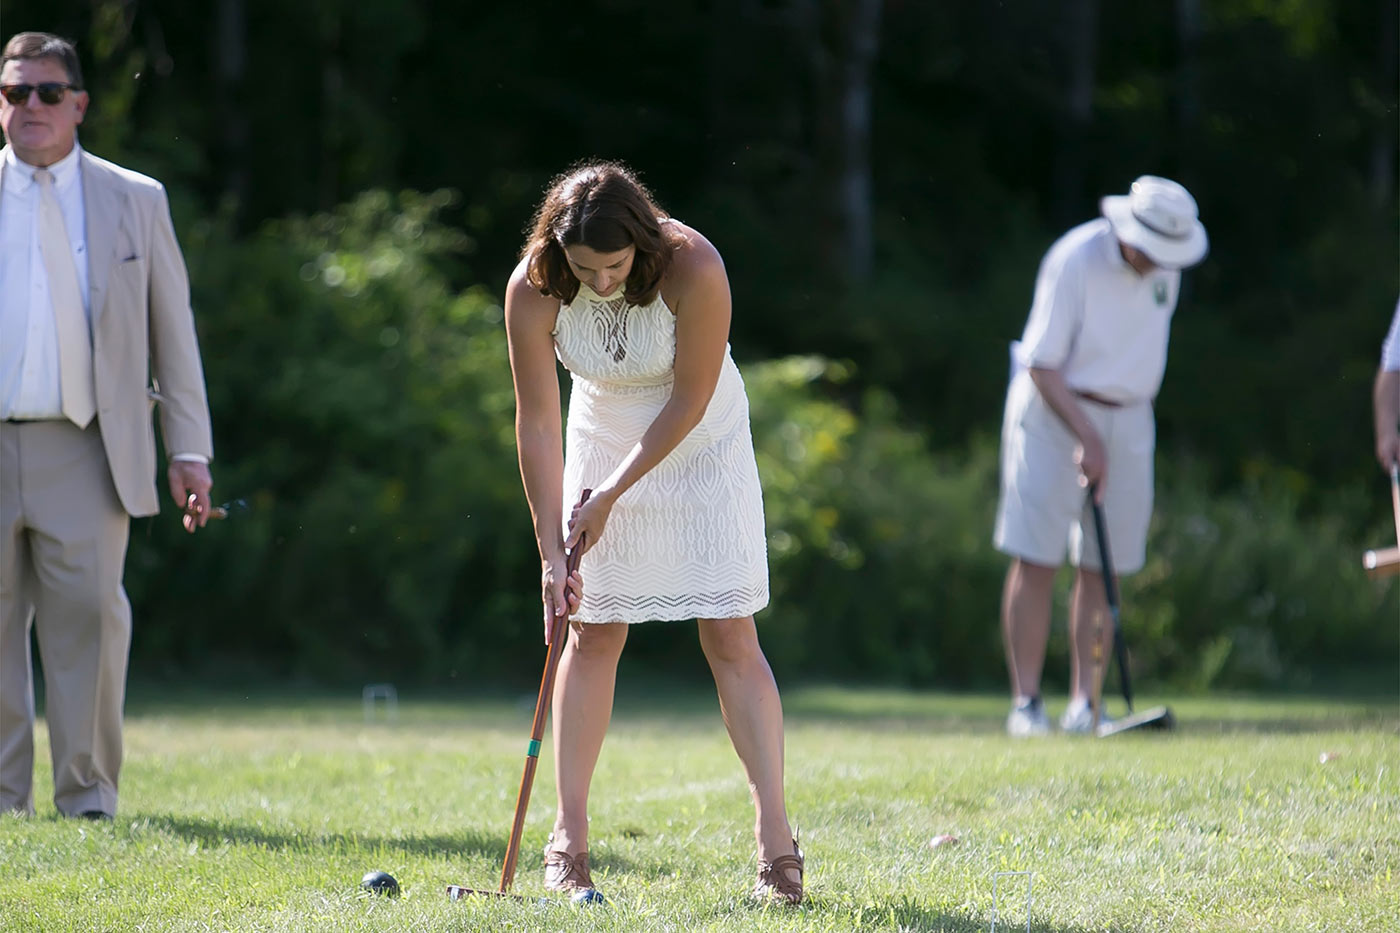 woman in white dress strikes ball